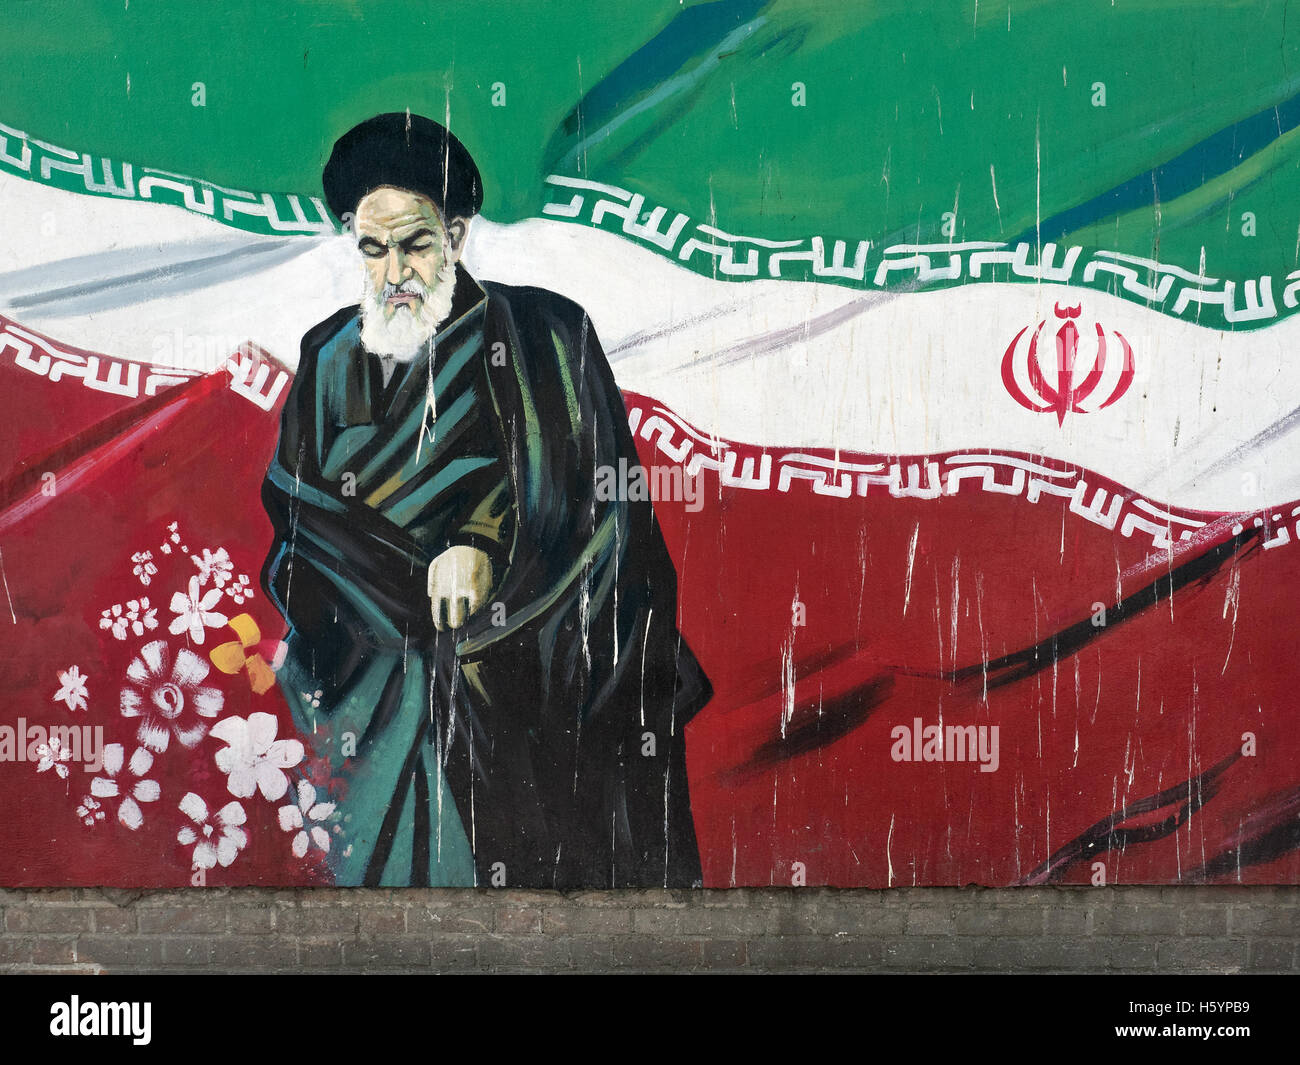 Ayatollah Khomeini and Iran flag mural, Tehran, Iran Stock Photo